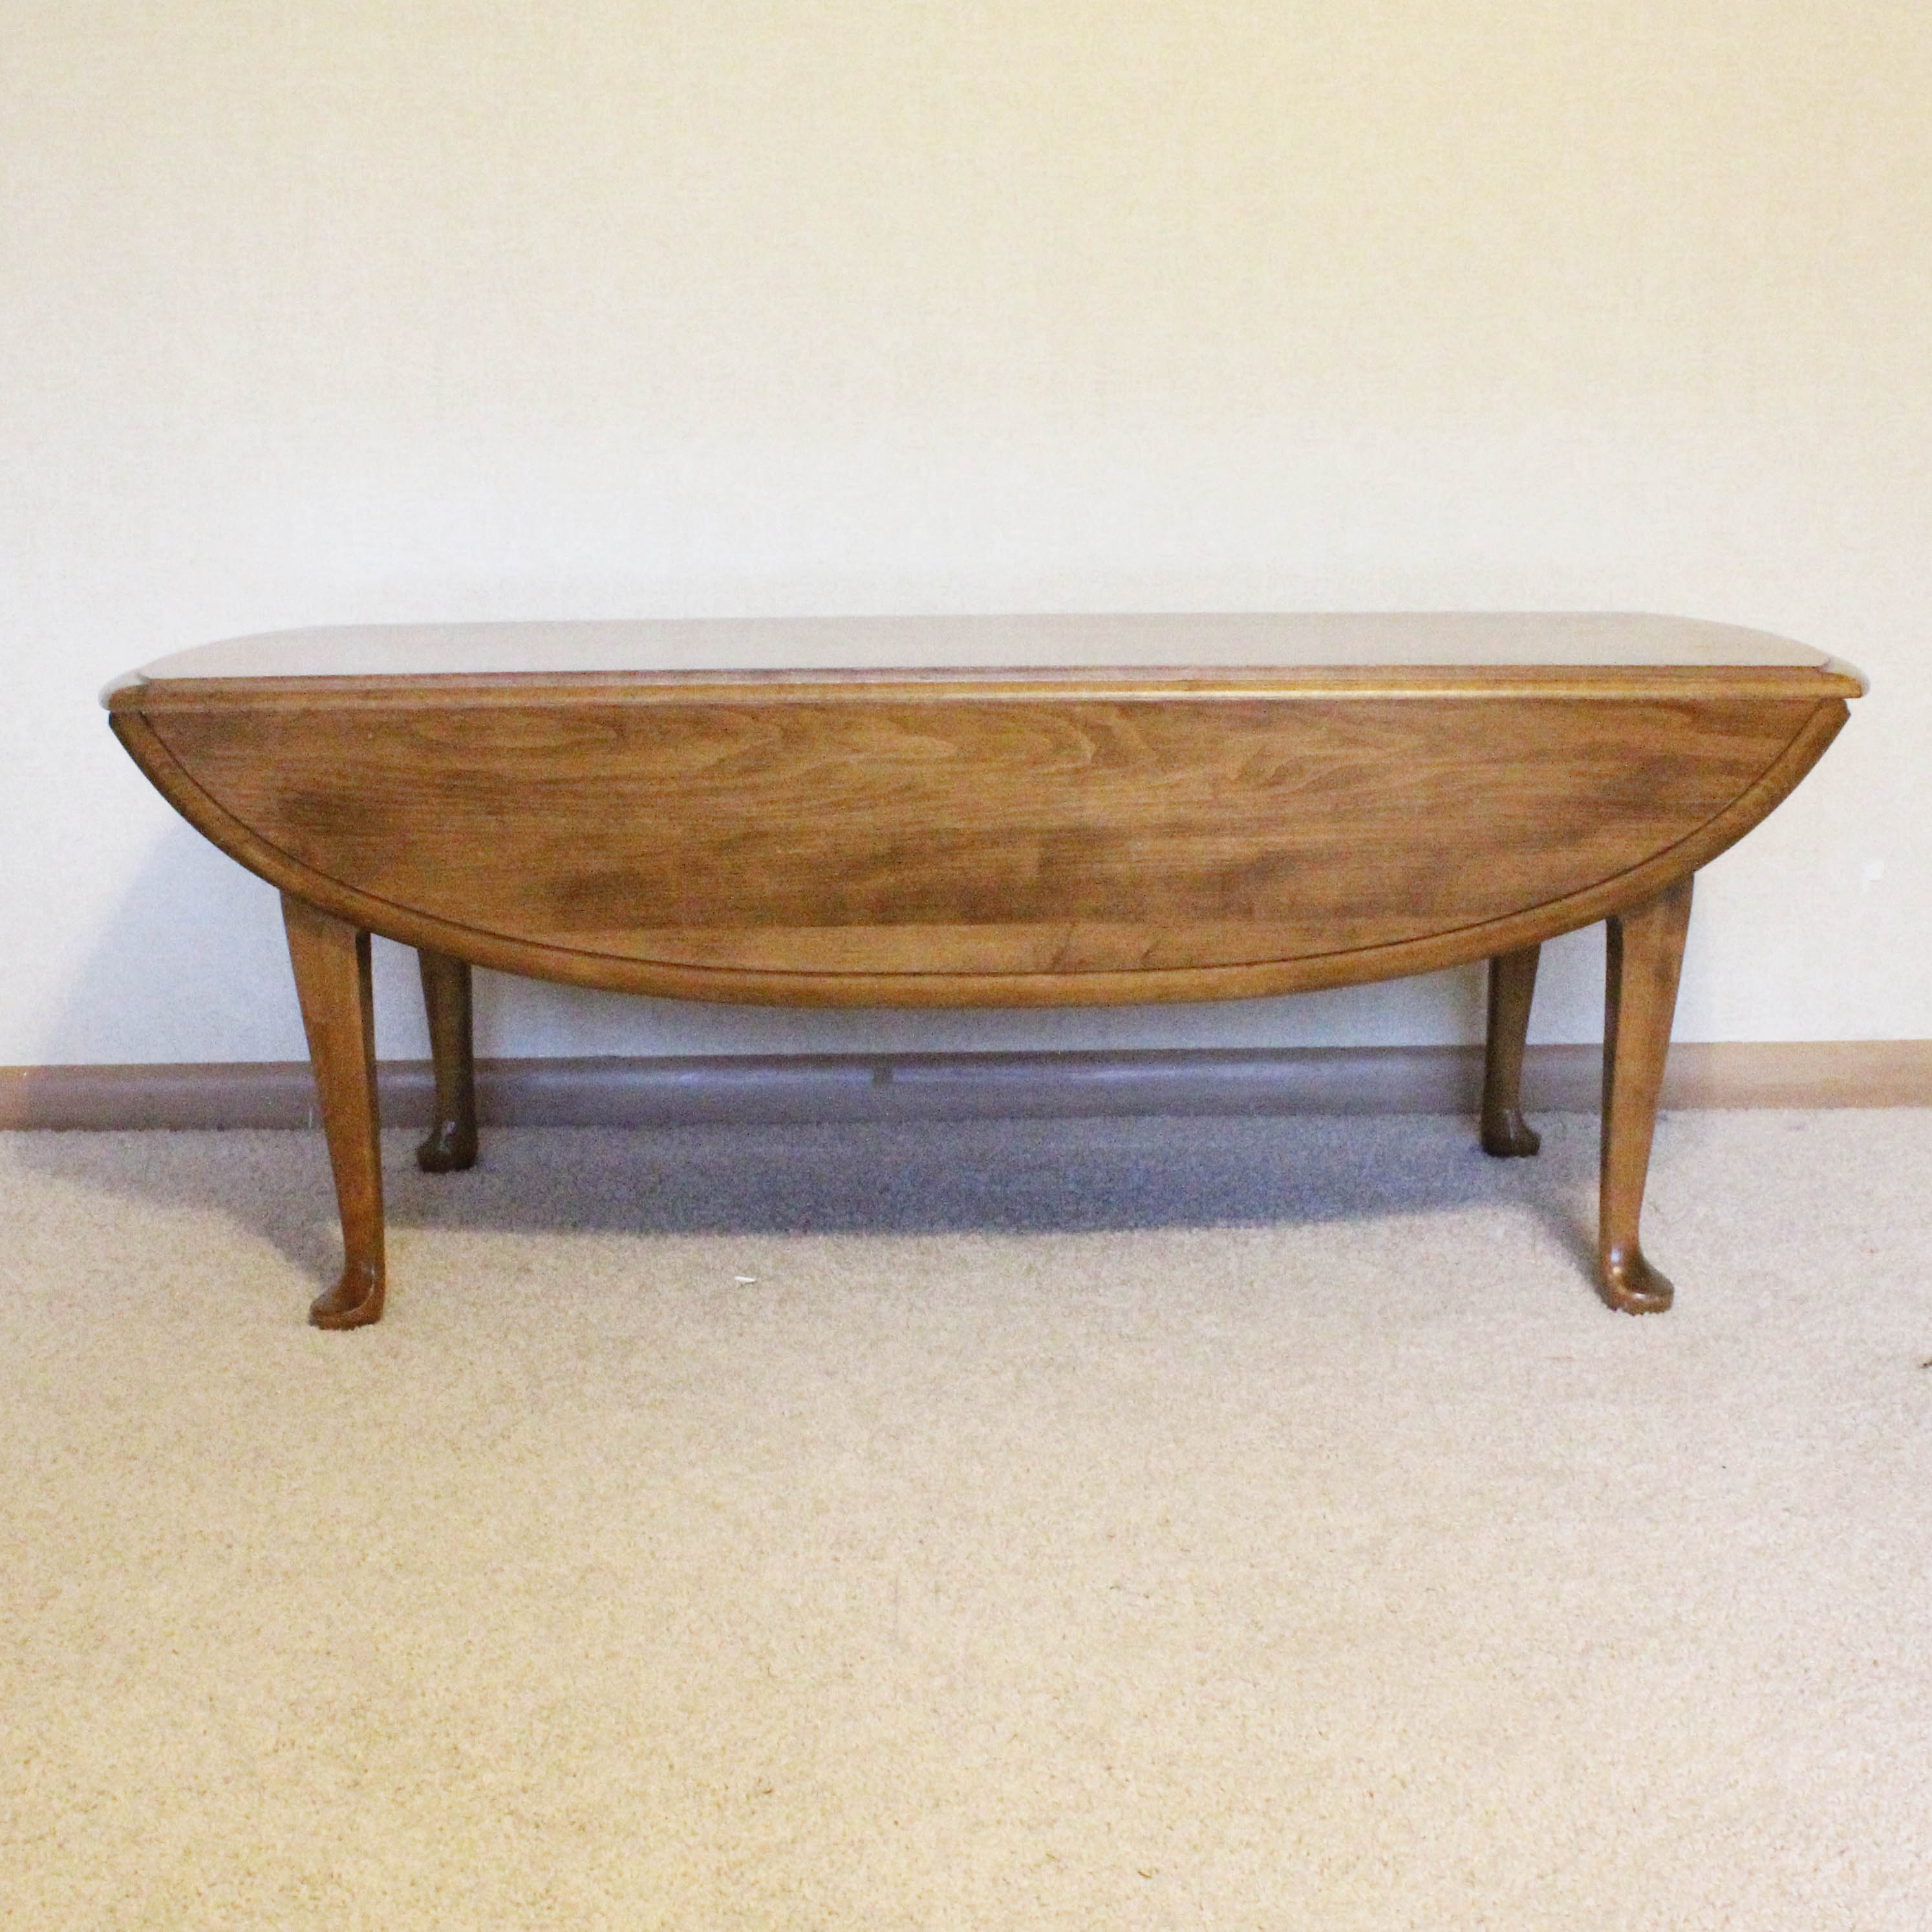 ethan allen coffee table Ethan Allen Solid Maple Drop Leaf Coffee Table : EBTH ethan allen coffee table